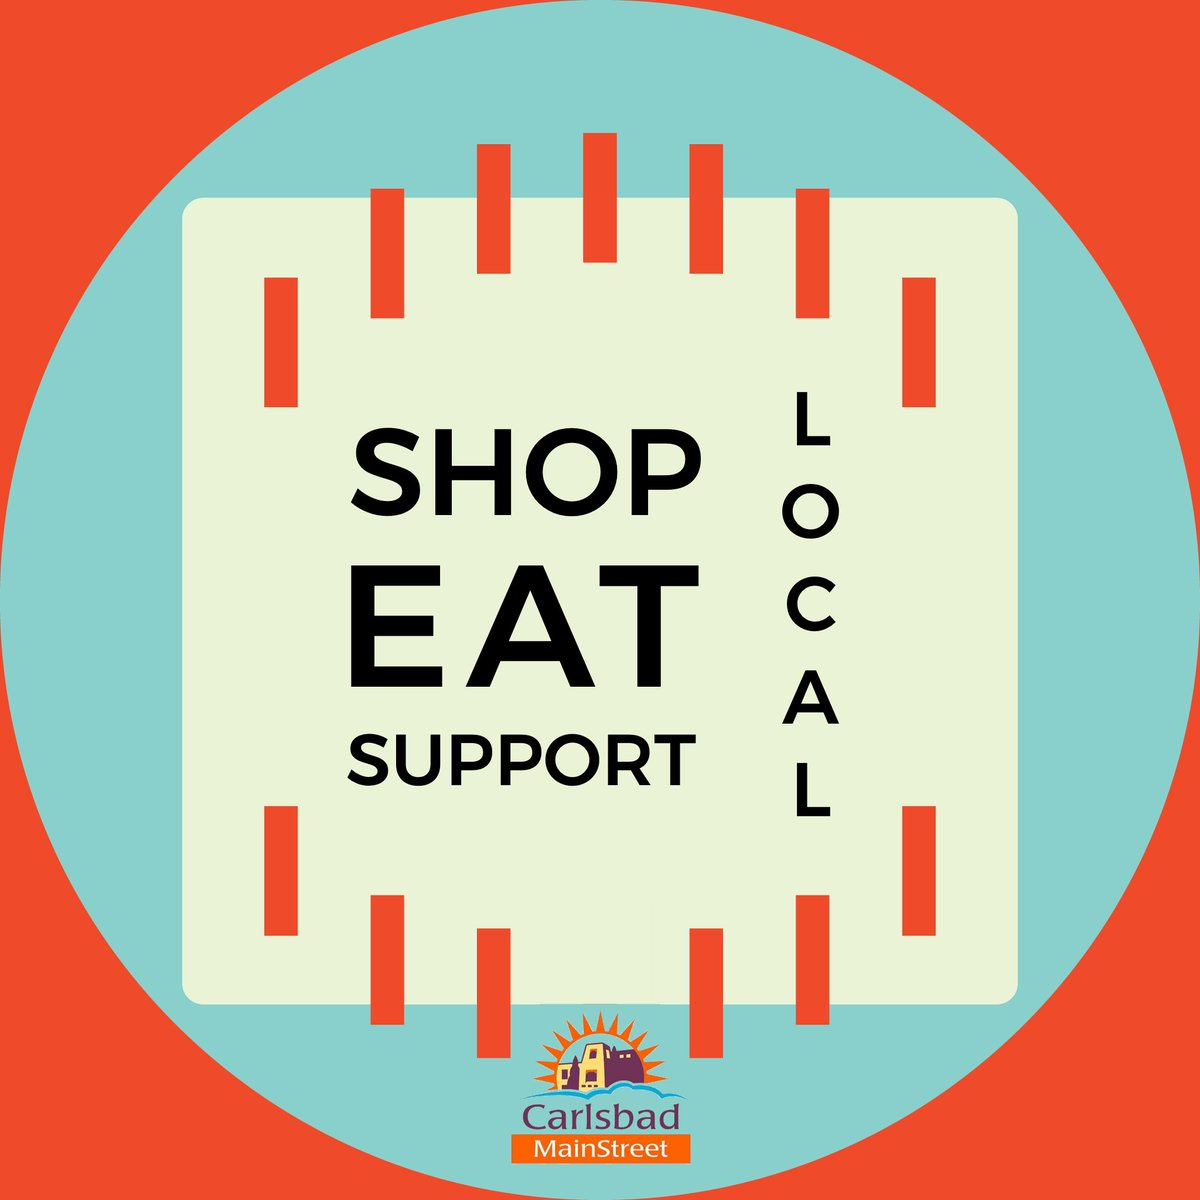 It's still very important to support small businesses whenever possible! Be sure to visit local eateries and merchants as much as you can! #shopcarlsbadpic.twitter.com/TQ5QQEy2ye